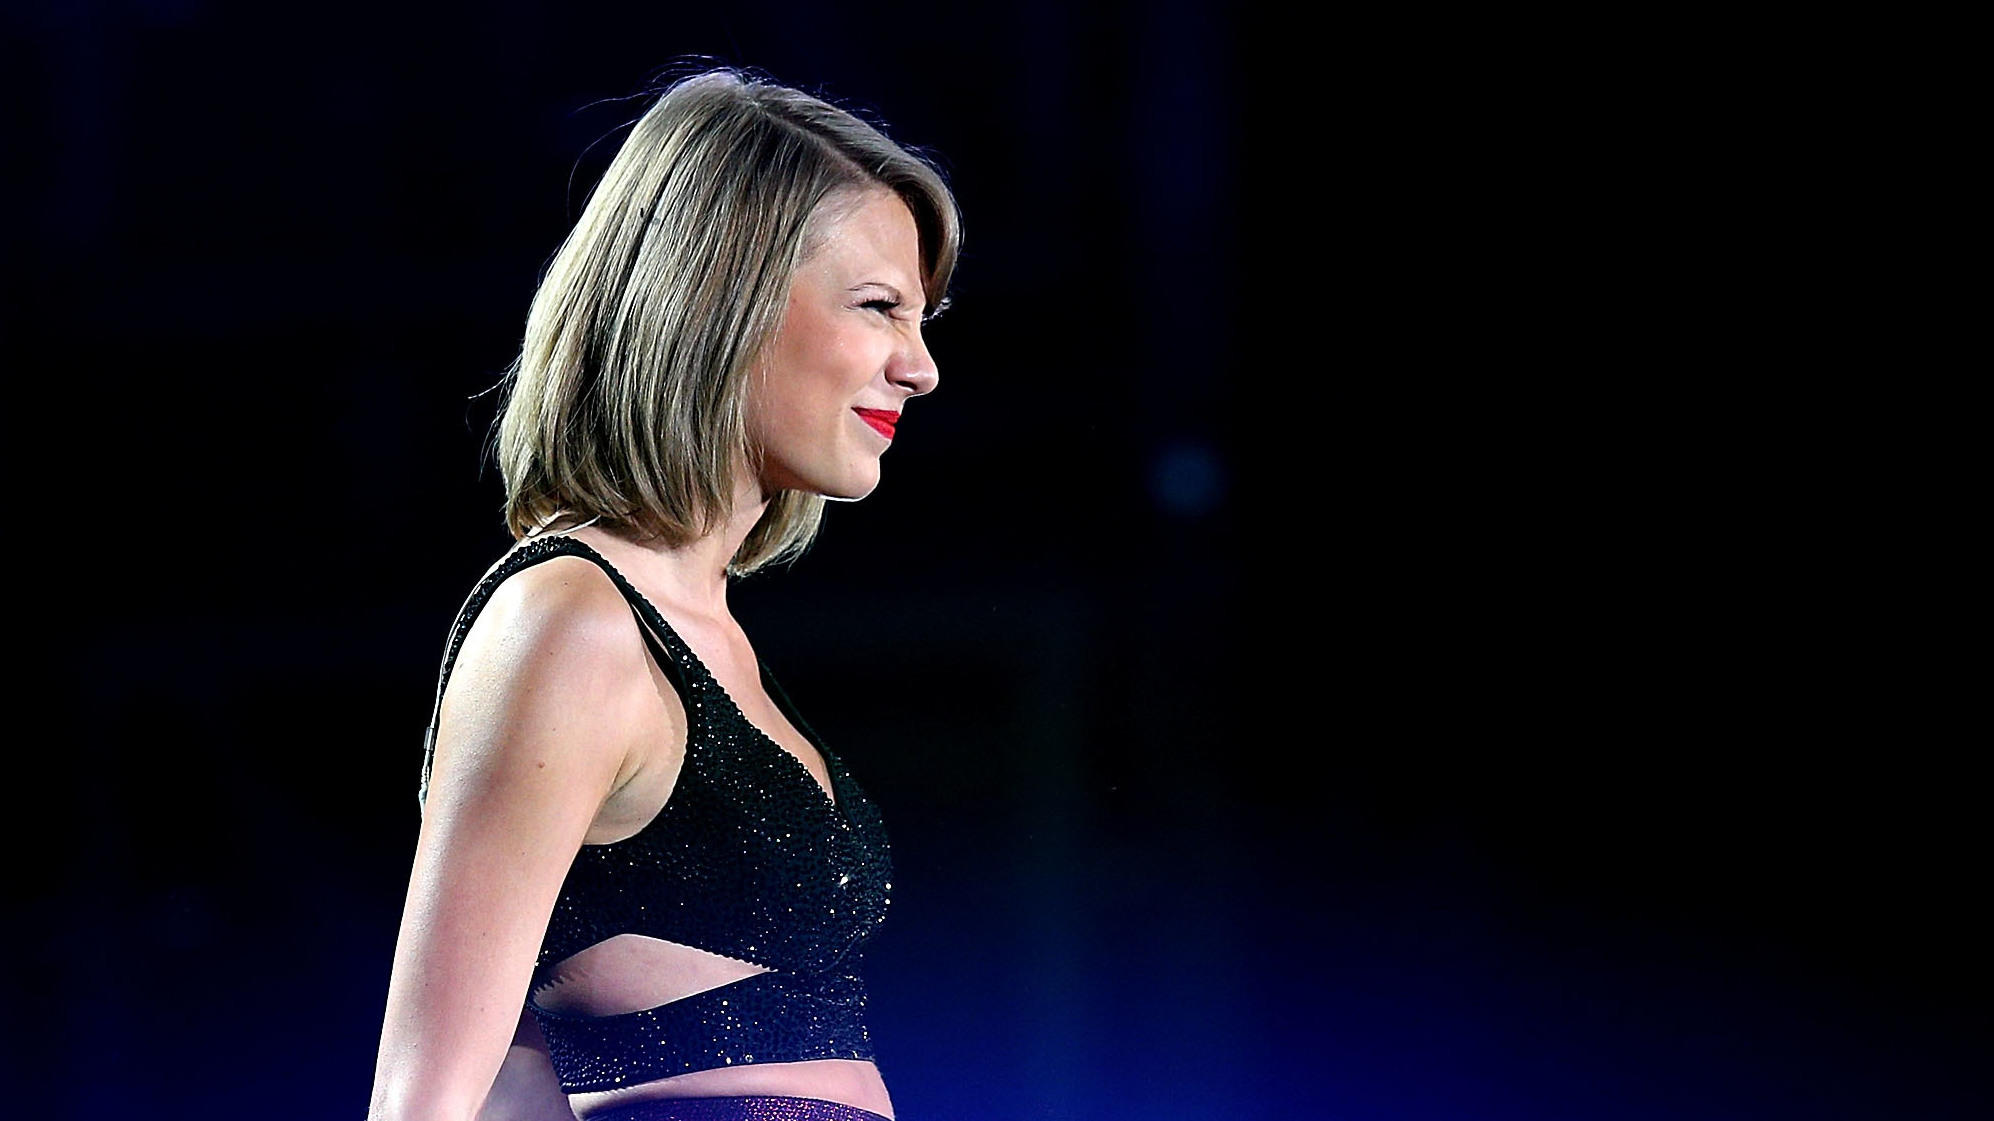 Taylor Swift brings her albums back to Spotify, Pandora, Google Play